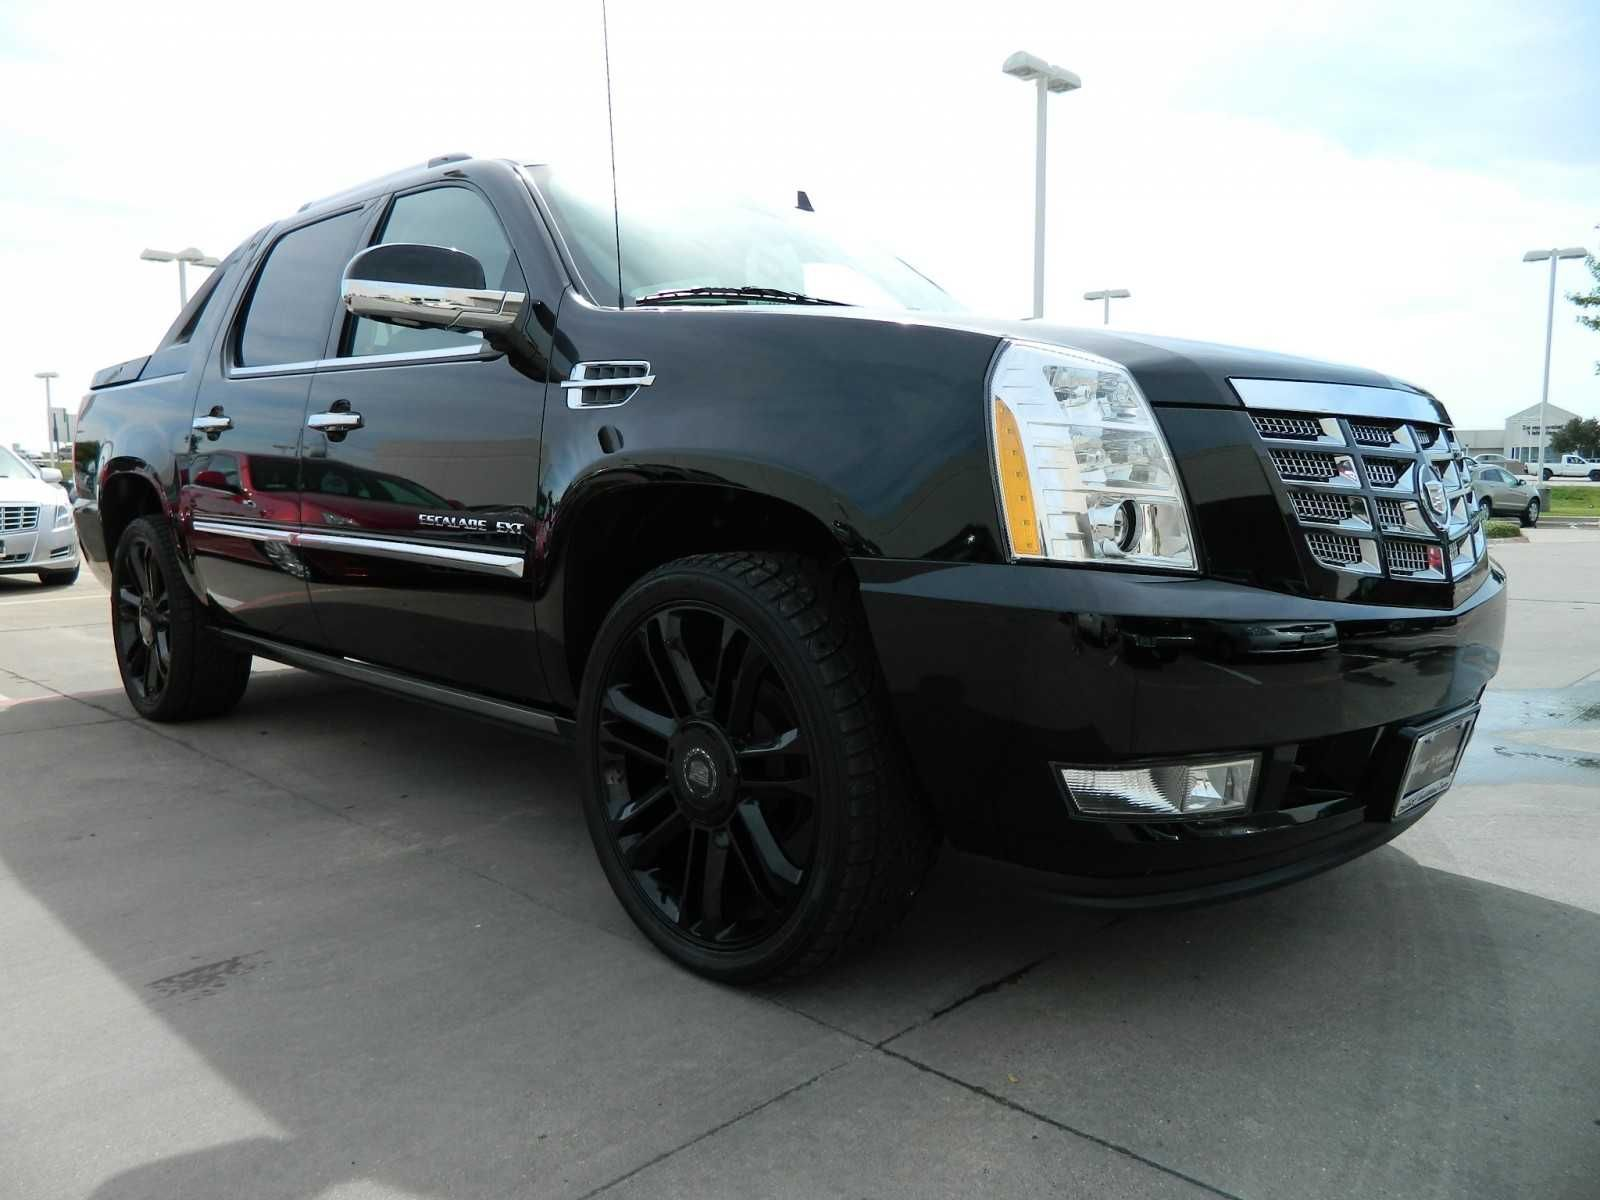 New 2012 Cadillac Escalade Ext Premium For Sale